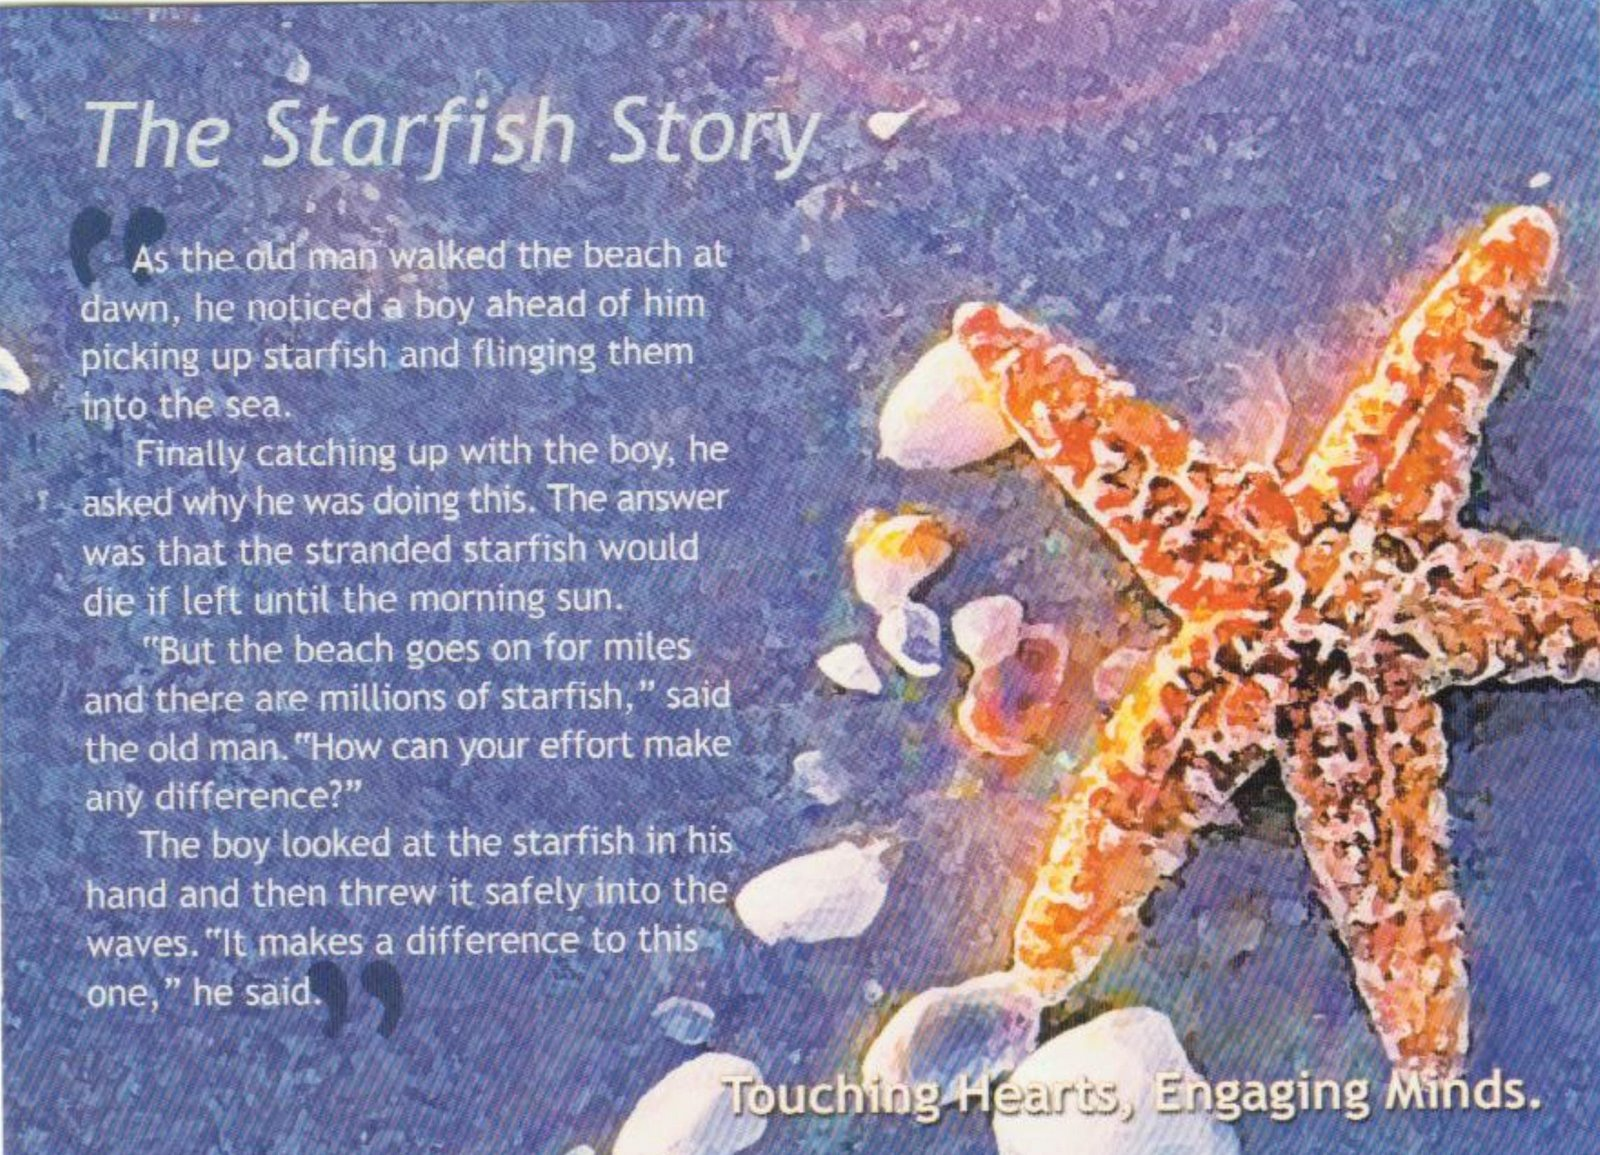 The Starfish Story 2